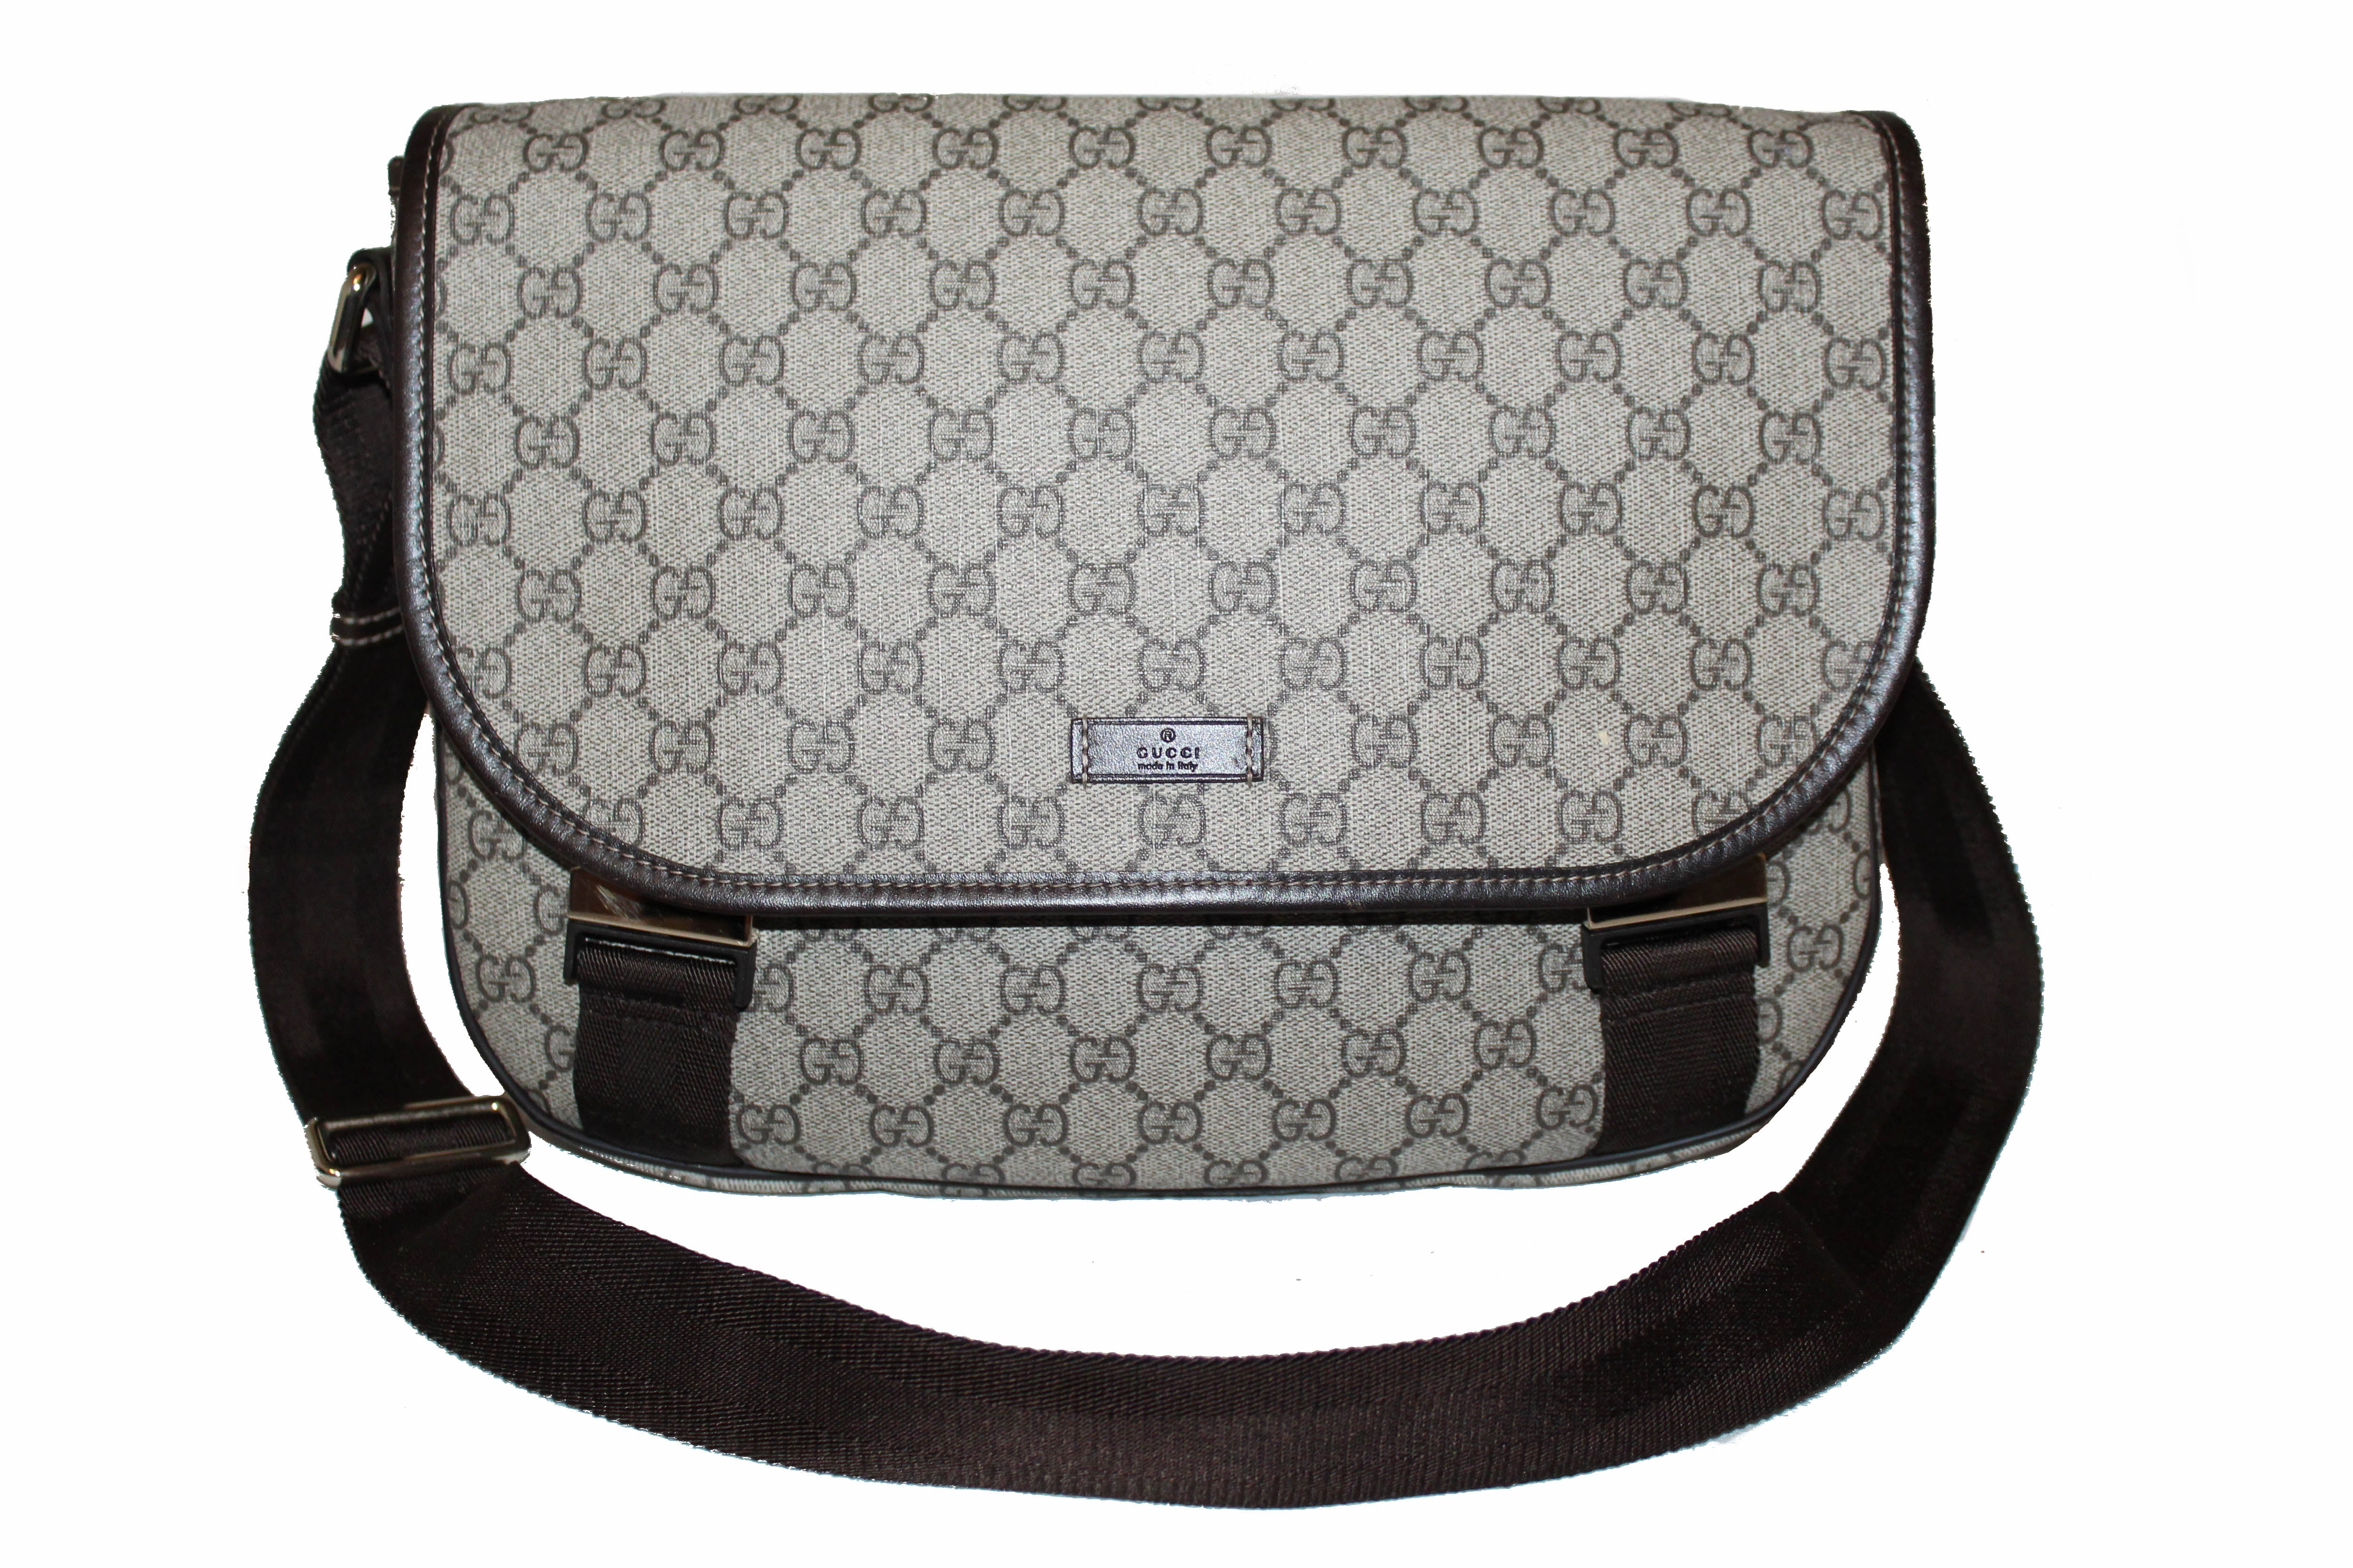 Authentic Gucci Beige/Ebony GG Coated Canvas Large Messenger Bag